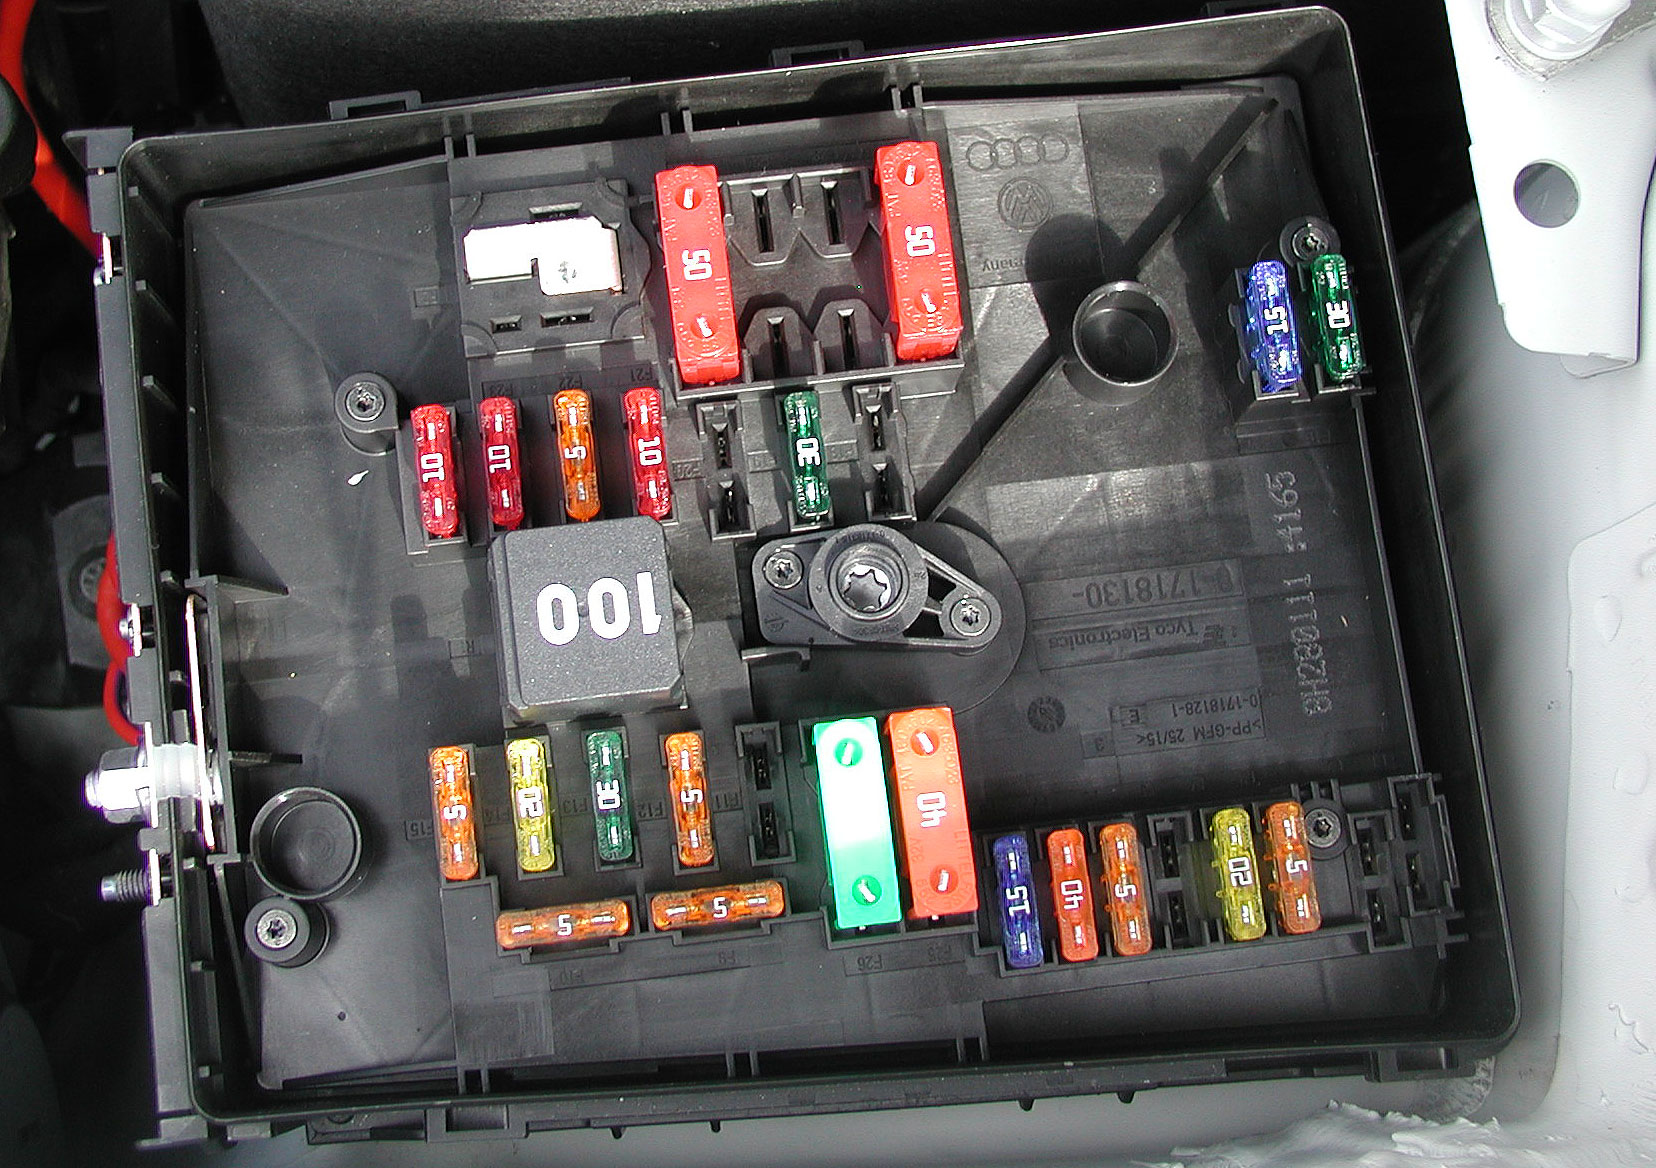 engineFuses2 golf mkv 1 9 tdi rcd 310 battery drain the volkswagen club of 2006 jetta tdi fuse box diagram at mifinder.co